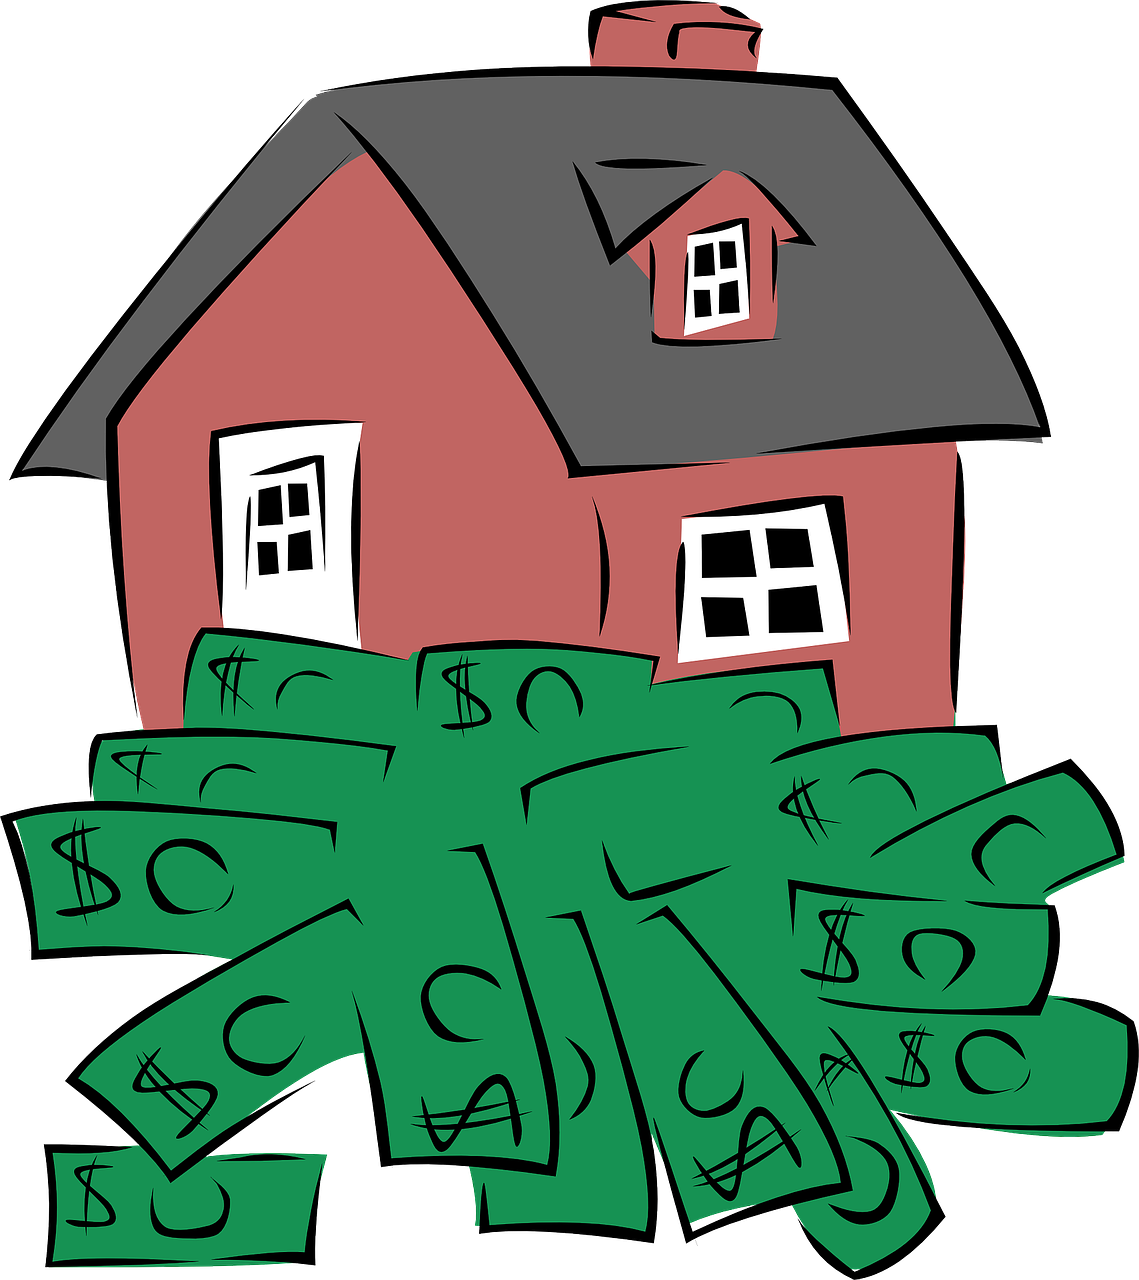 Mortgage foreclosures can result in great hardships to families.